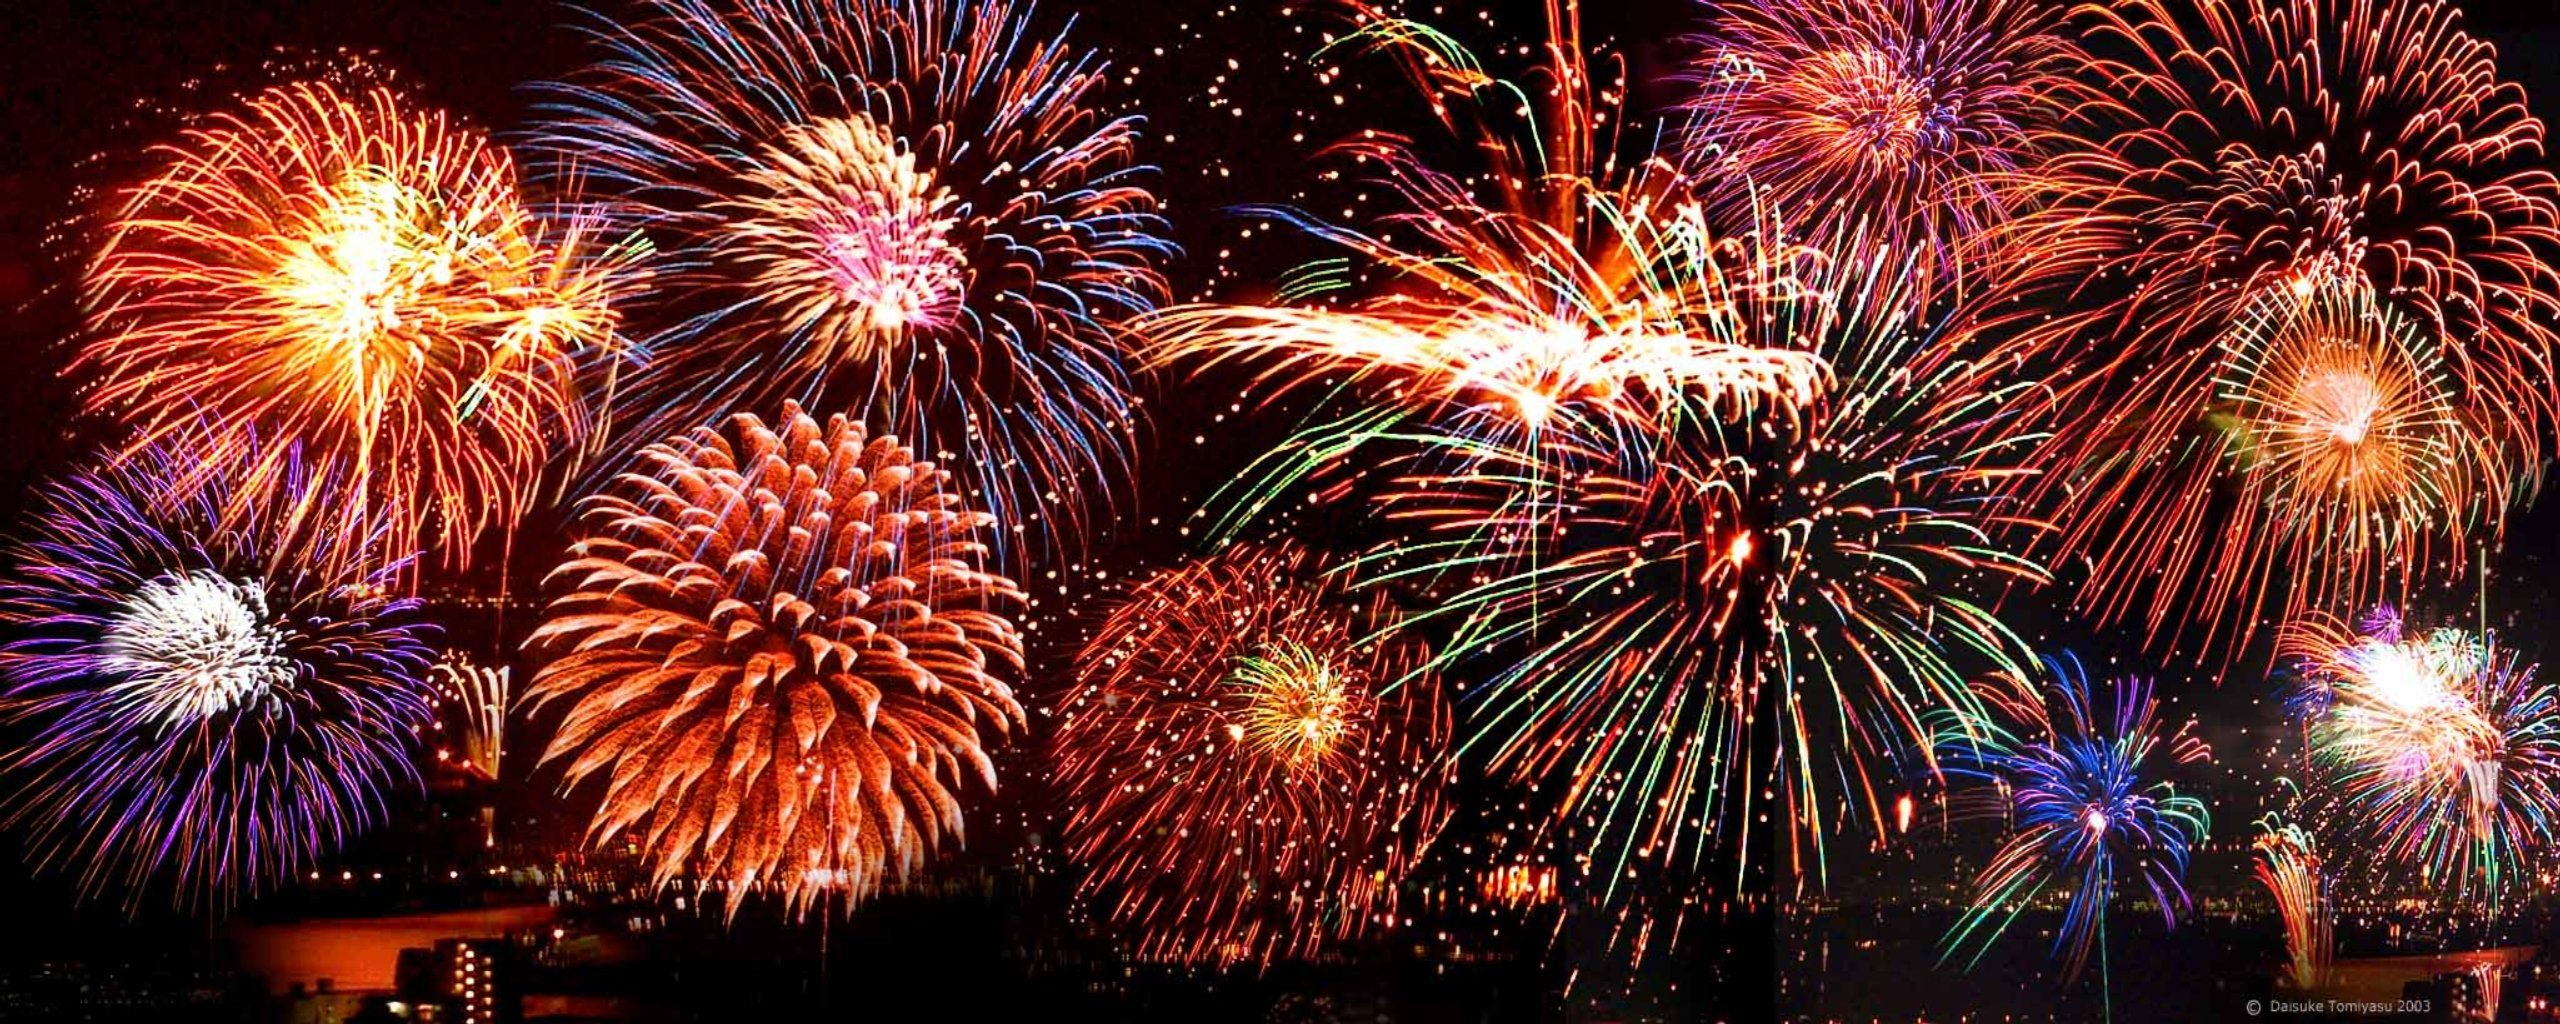 San Pablo | 4th of July Family Celebration & Fireworks Show | 2015 | Funcheap